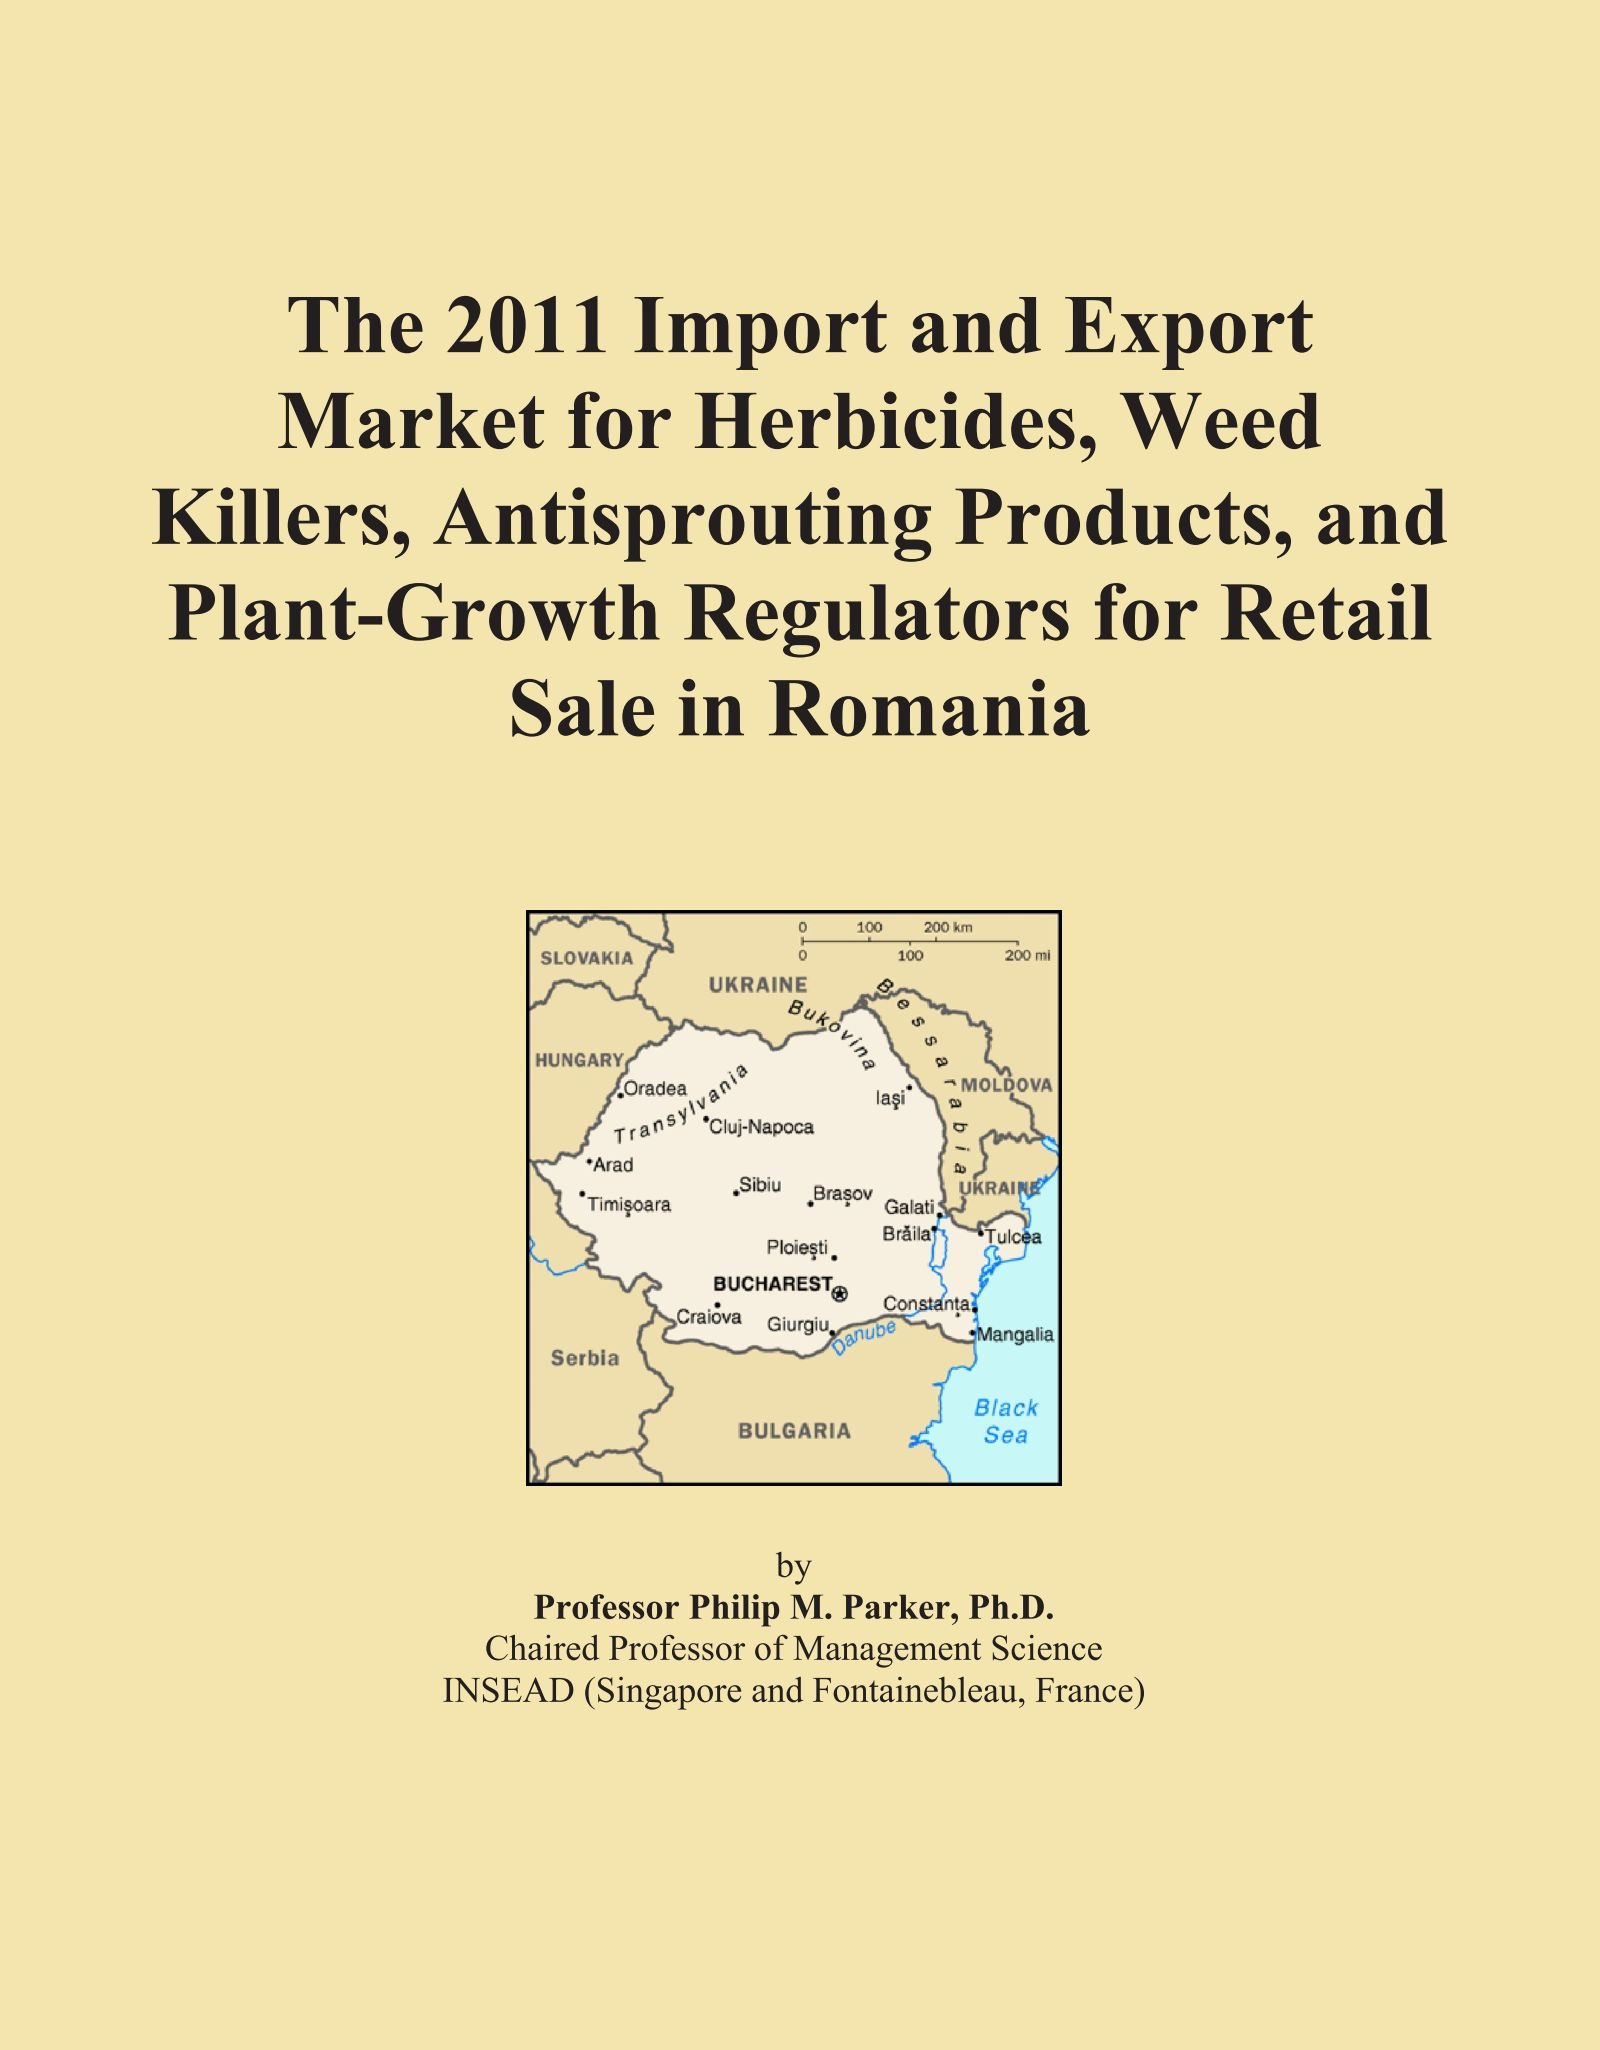 Download The 2011 Import and Export Market for Herbicides, Weed Killers, Antisprouting Products, and Plant-Growth Regulators for Retail Sale in Romania pdf